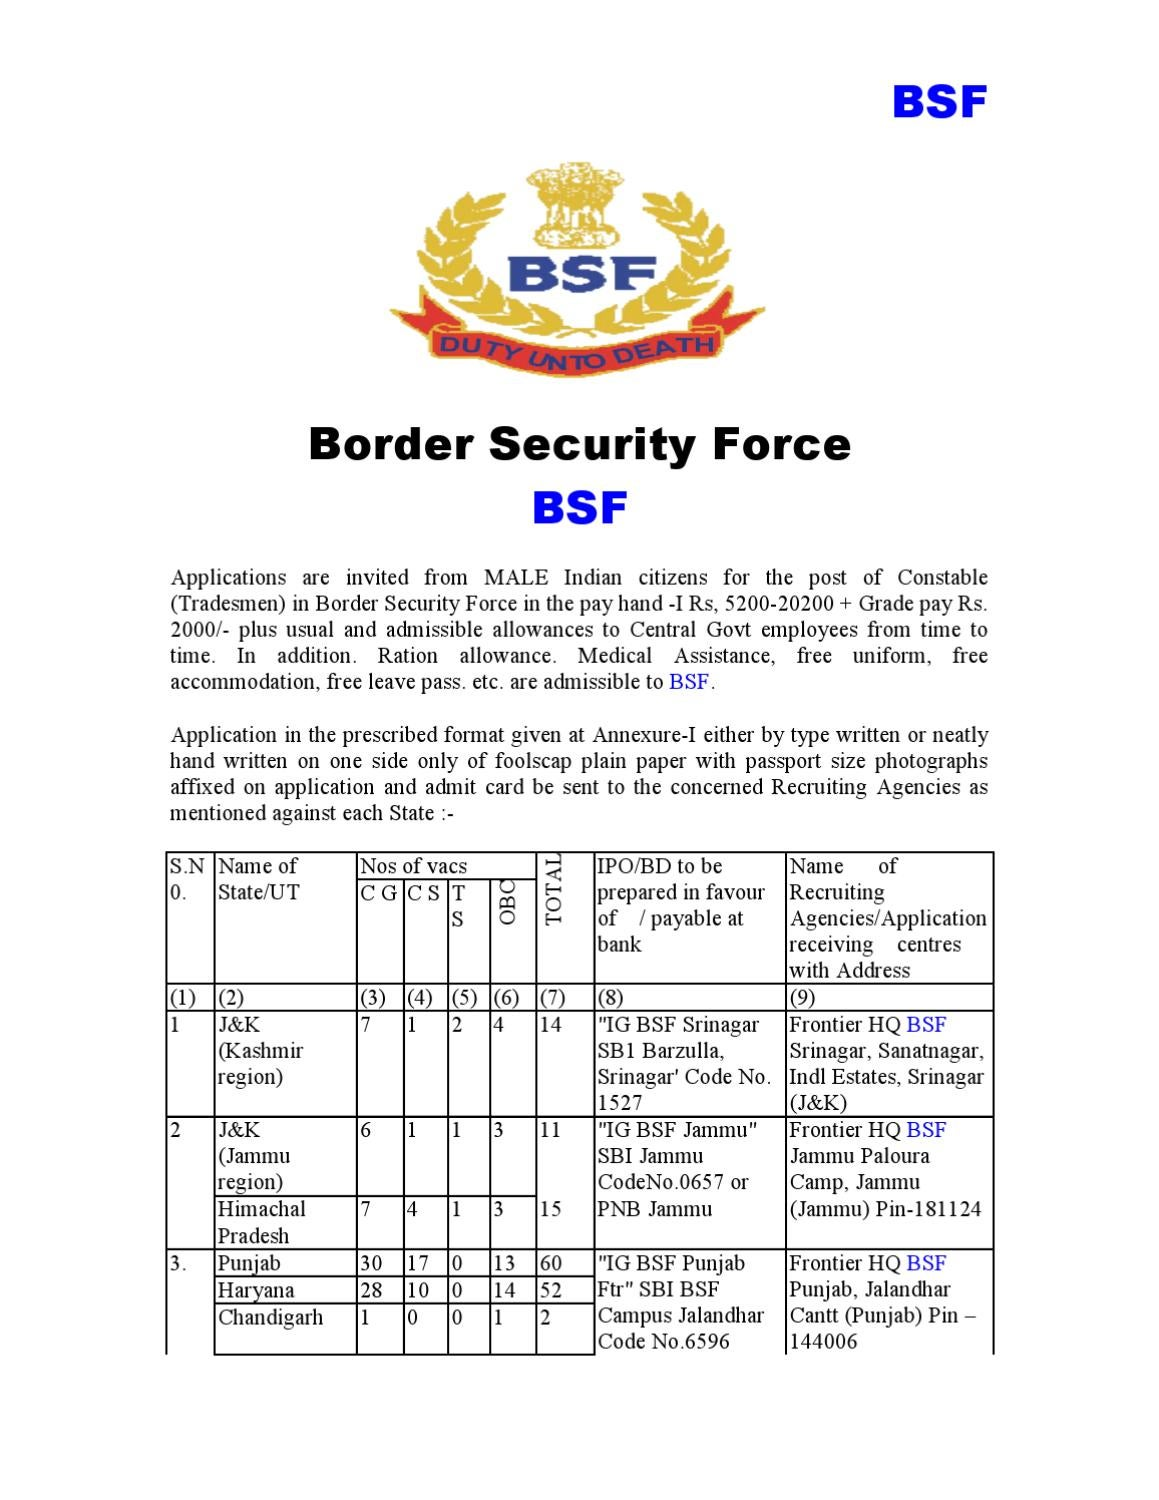 BSF Recruitment 2010 by Amit Kumar - issuu on leave my presence, offer to purchase form, leave of absence form, employee leave form, medical claim form, recruitment form, vacation request form, timesheet form, payroll form, employee separation notice form, office format for leave form, grievance form, daily report form, leave form example, certificate of service form, leave calendar, leave request, resignation form, employee information form, leave approval form,